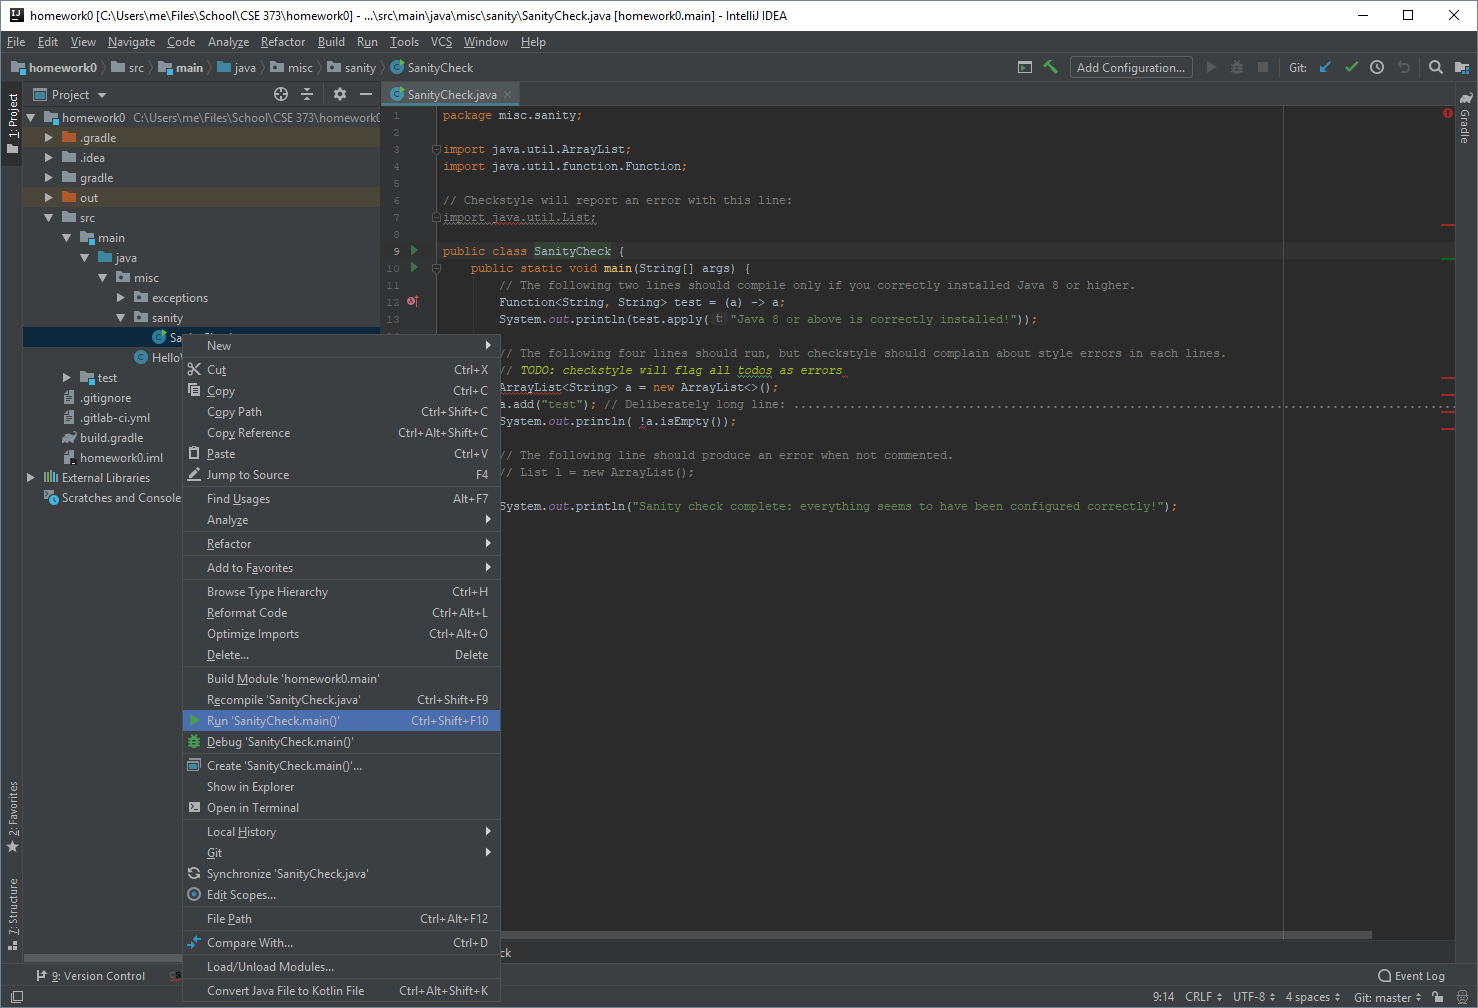 IntelliJ Interface Overview